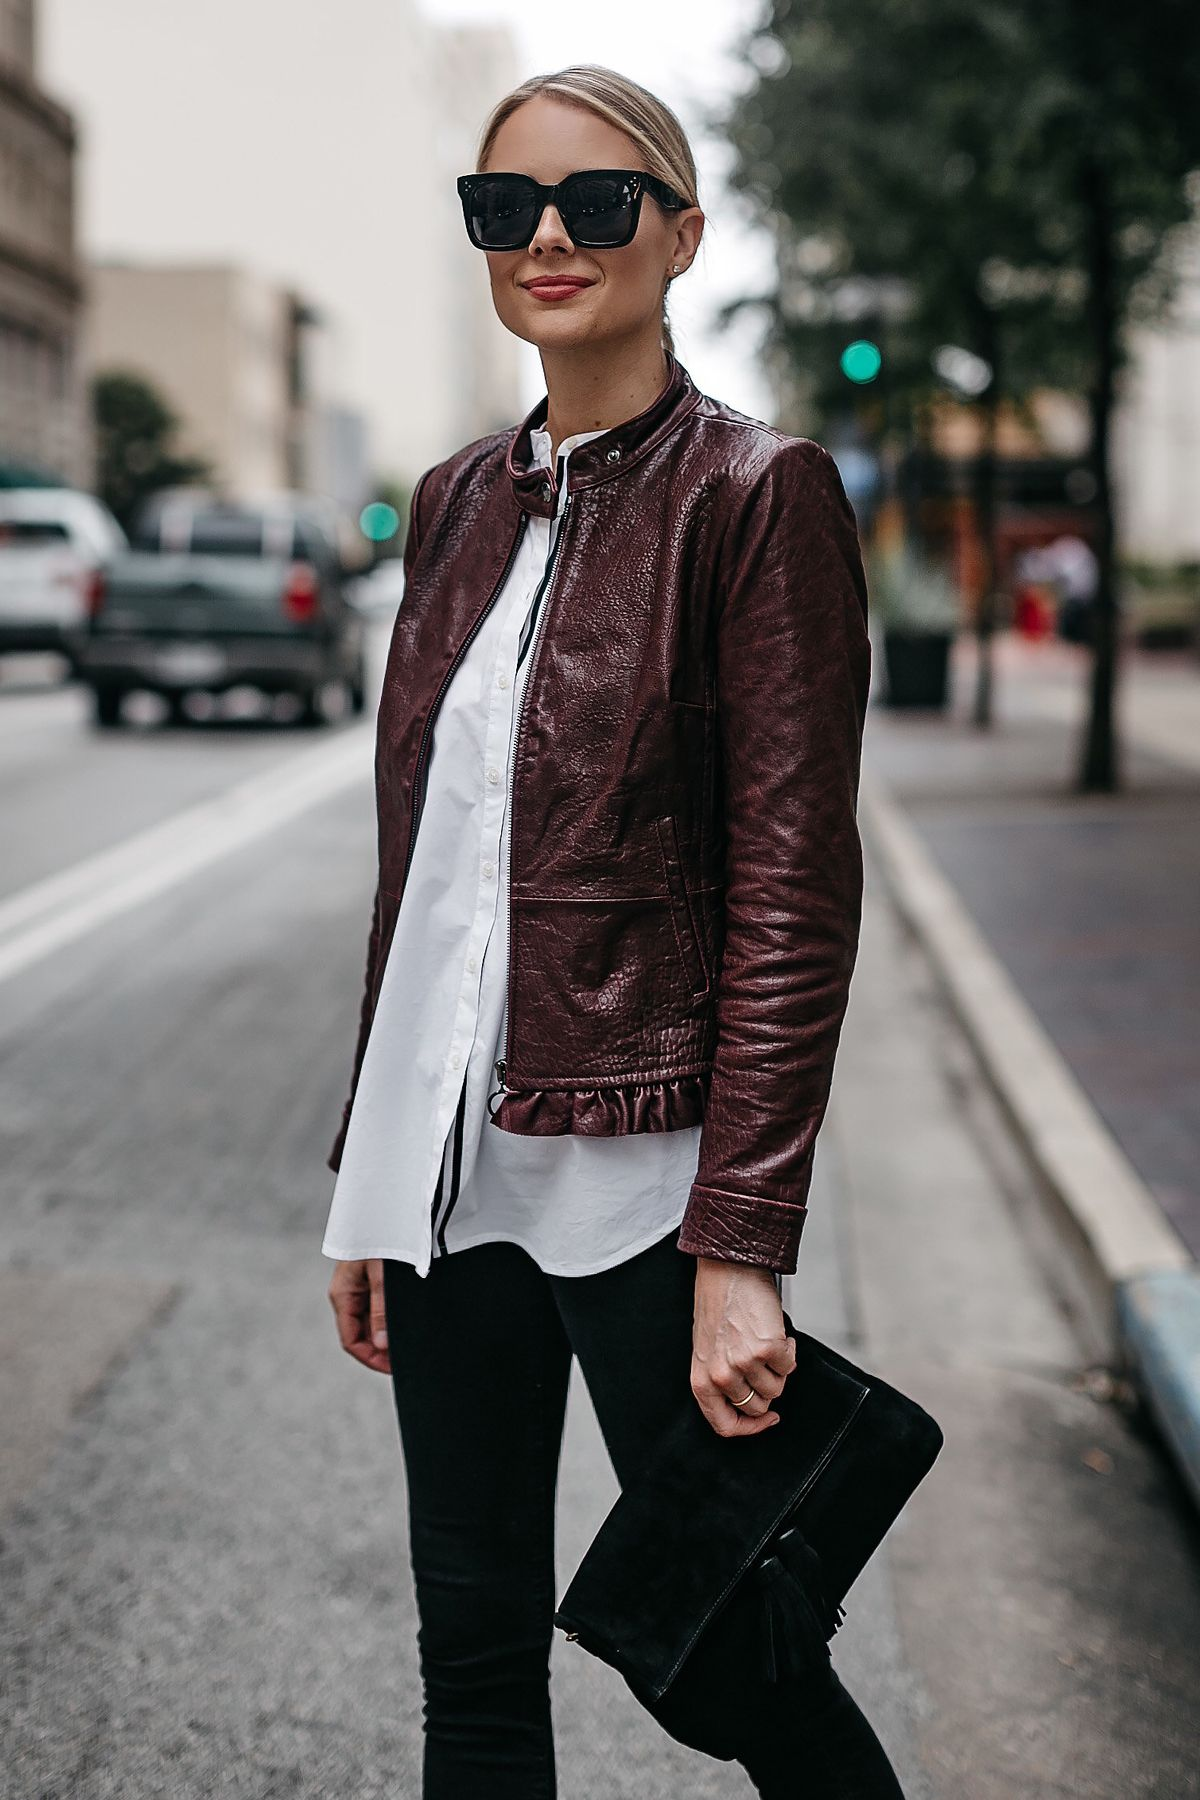 2019 year look- How to white wear moto jacket